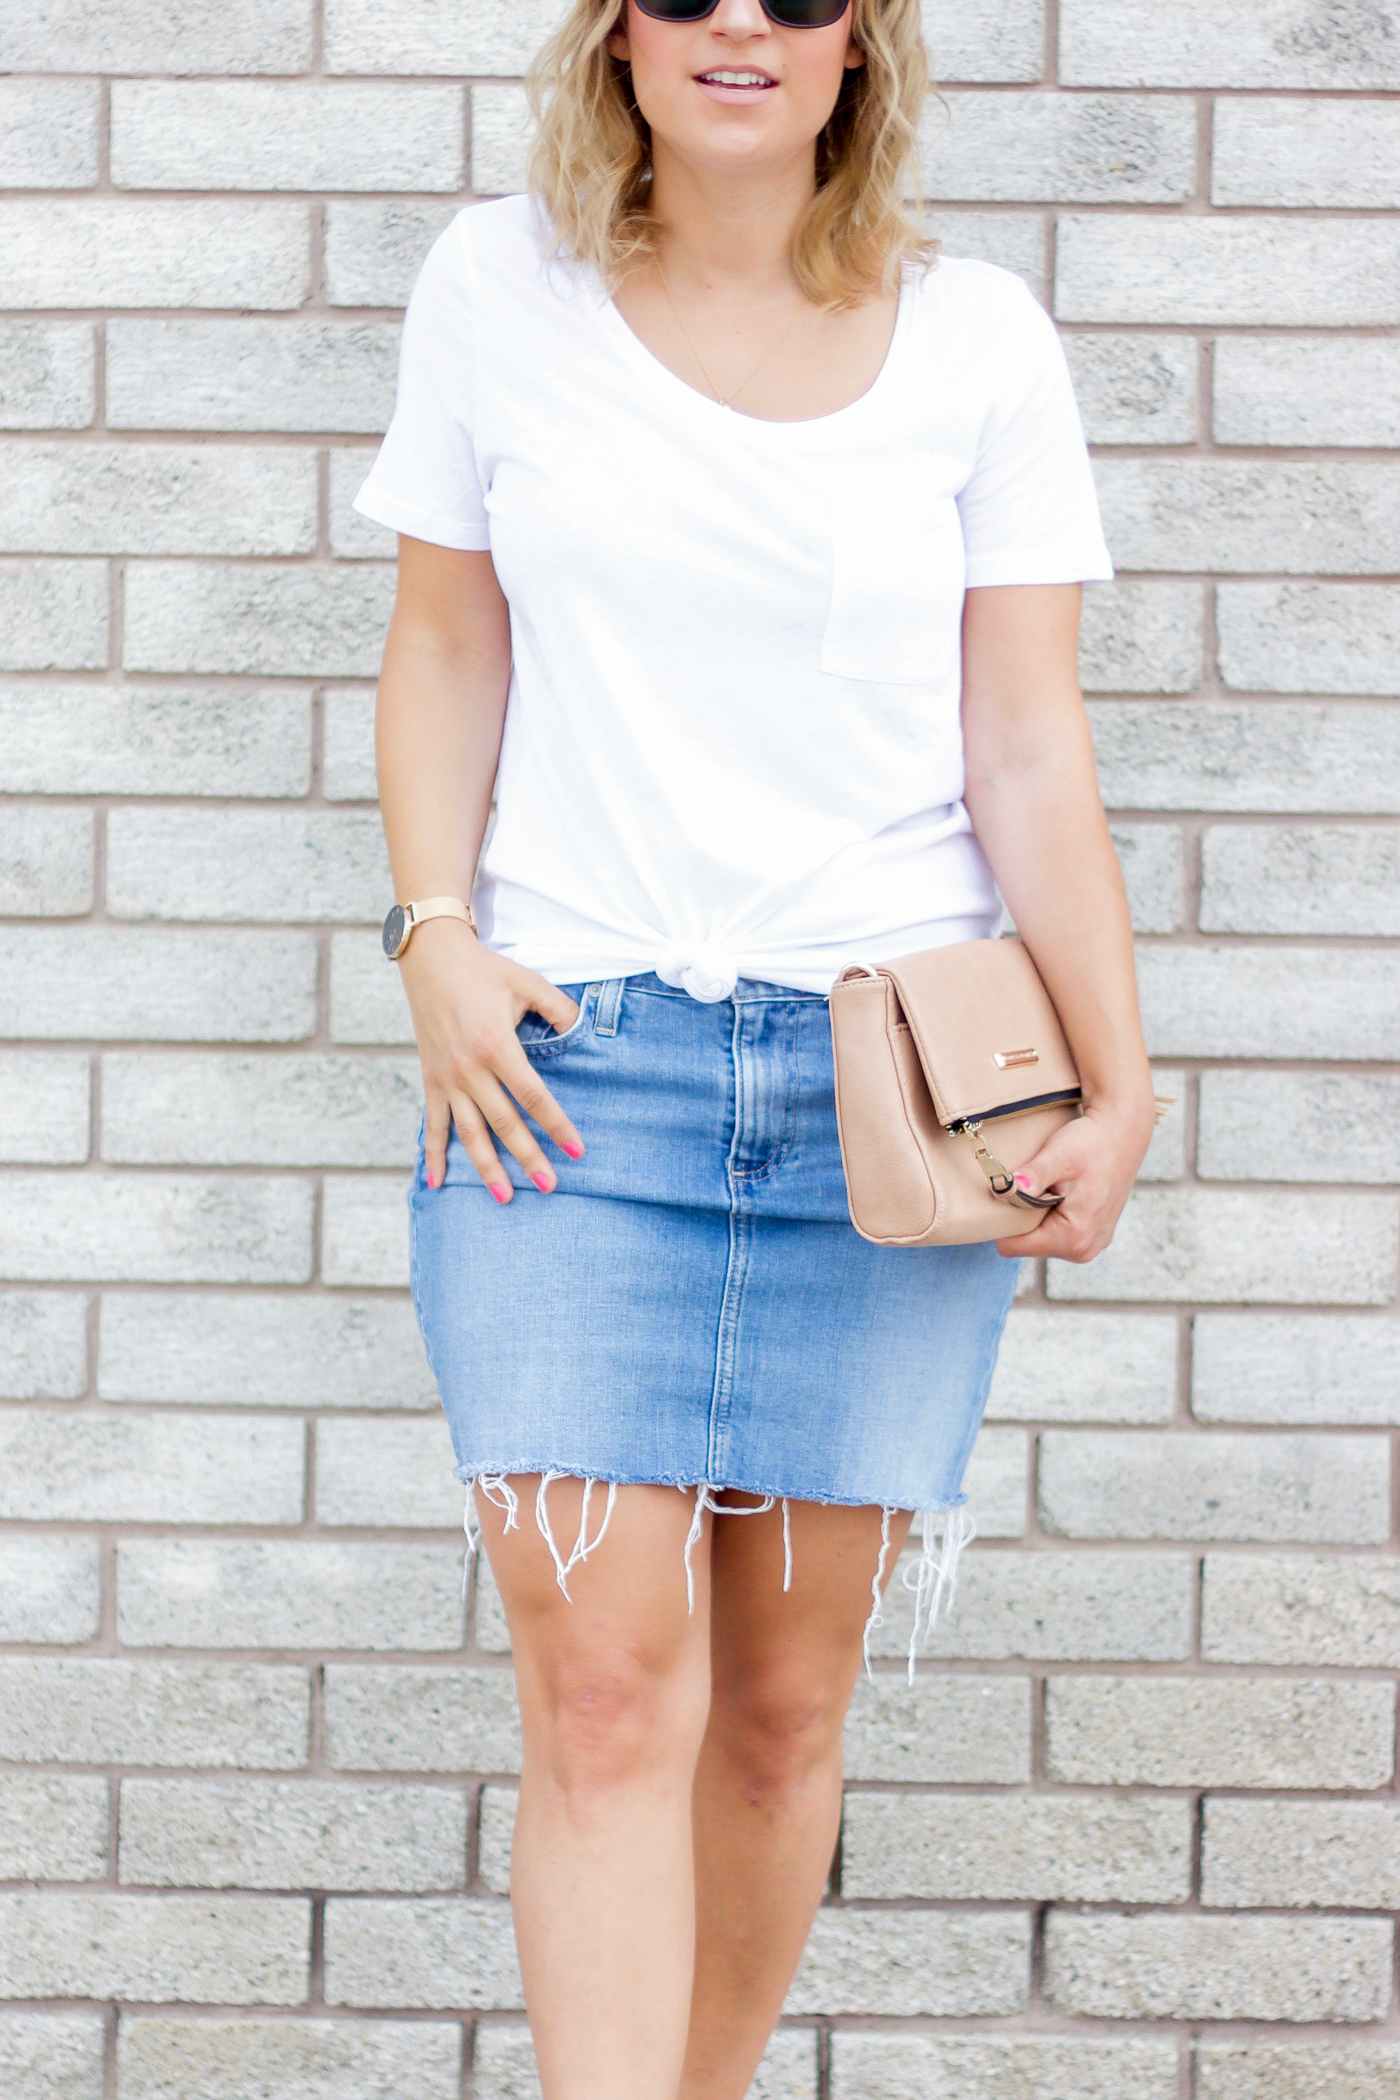 Simple summer outfit idea, with a white t-shirt from Sears and a light denim skirt from Ag Jeans